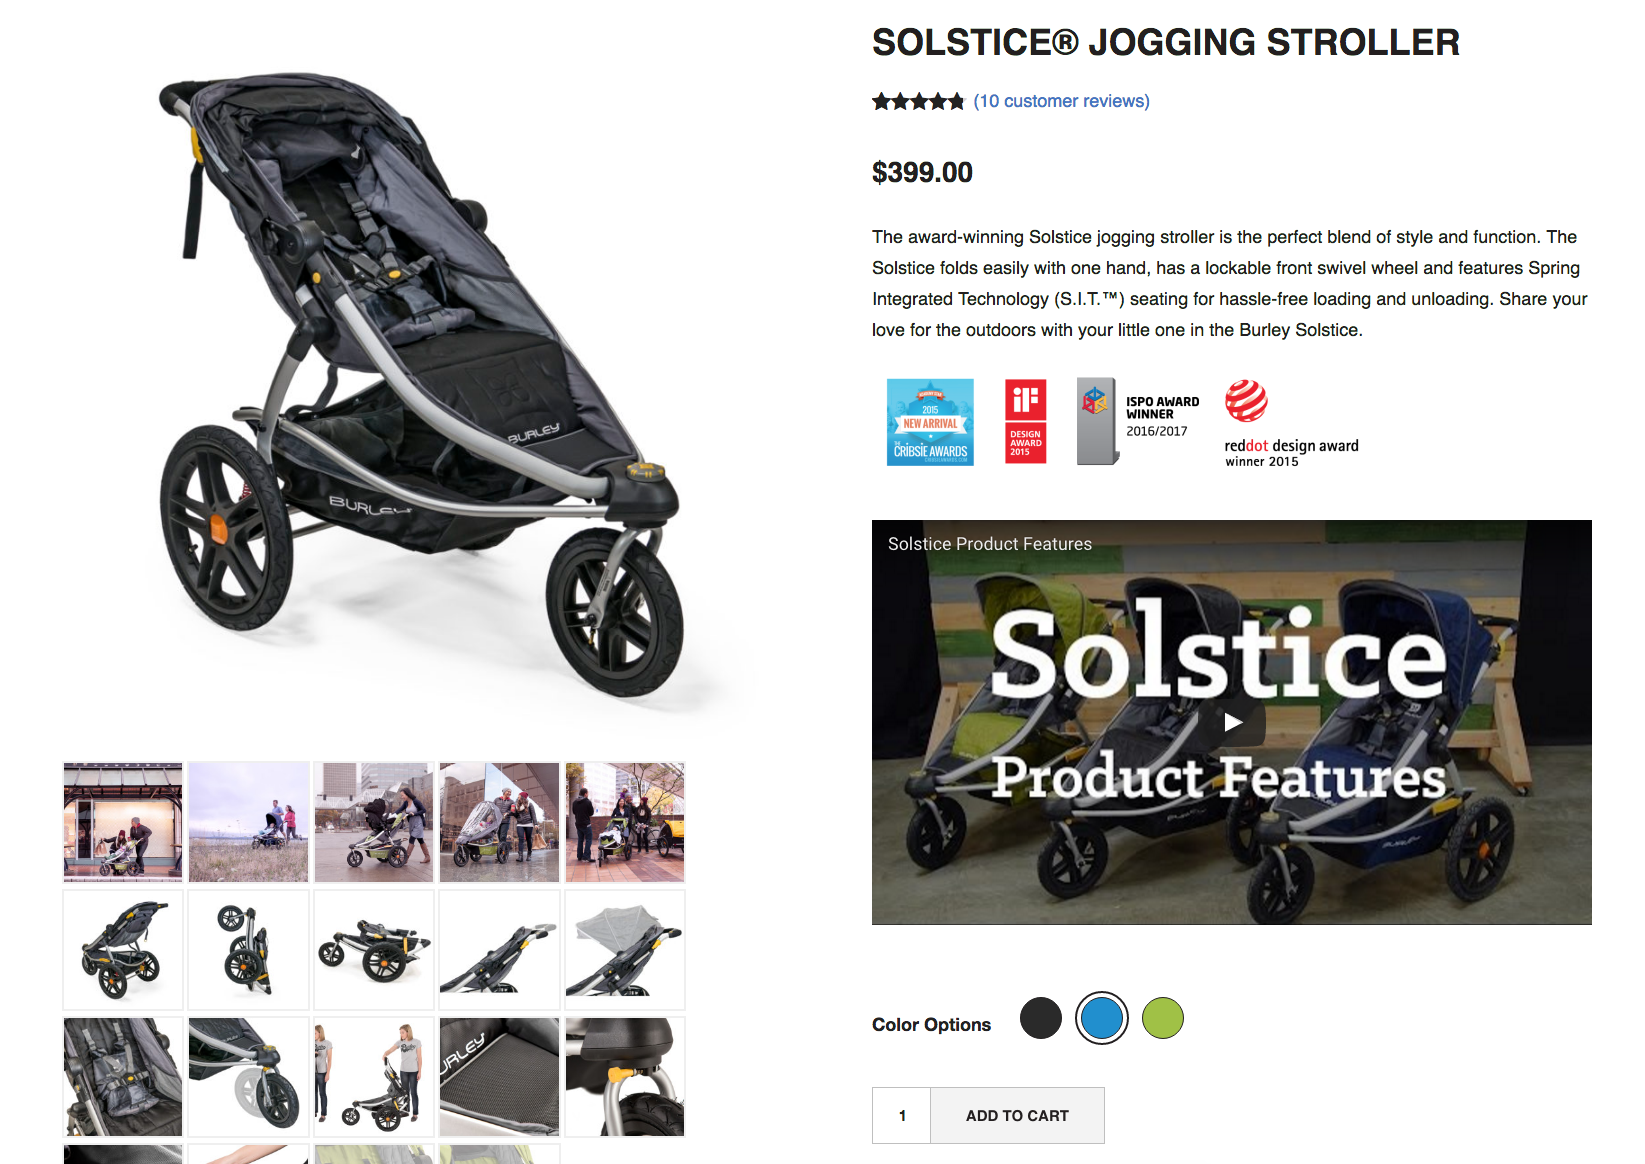 Parents or family members who want to get a good workout in but still take their little one along can give this jogging stroller a try.